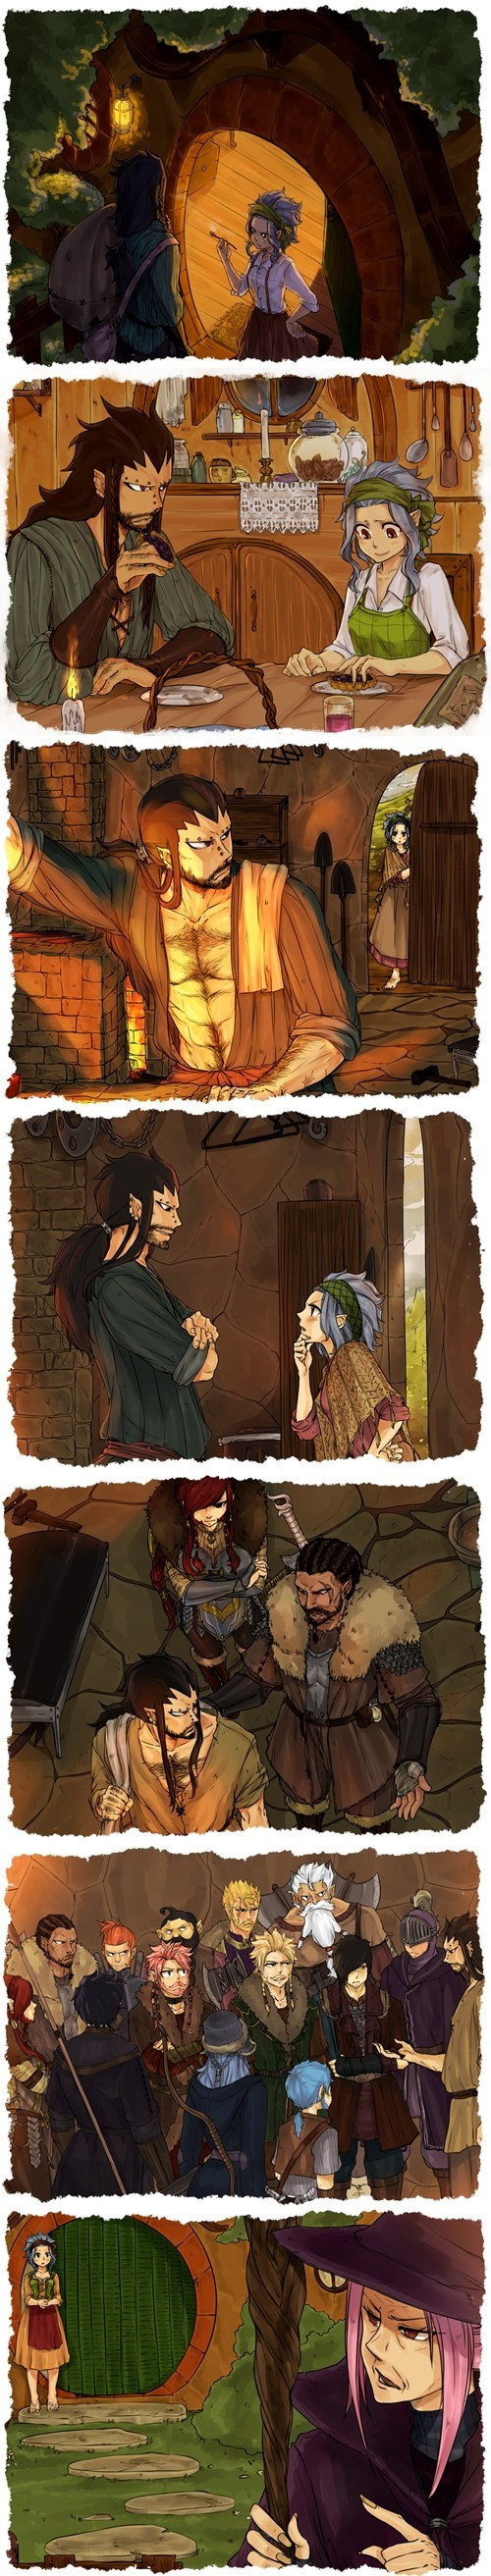 anime crossover fairy tail Fan Art The Hobbit - 8420277248